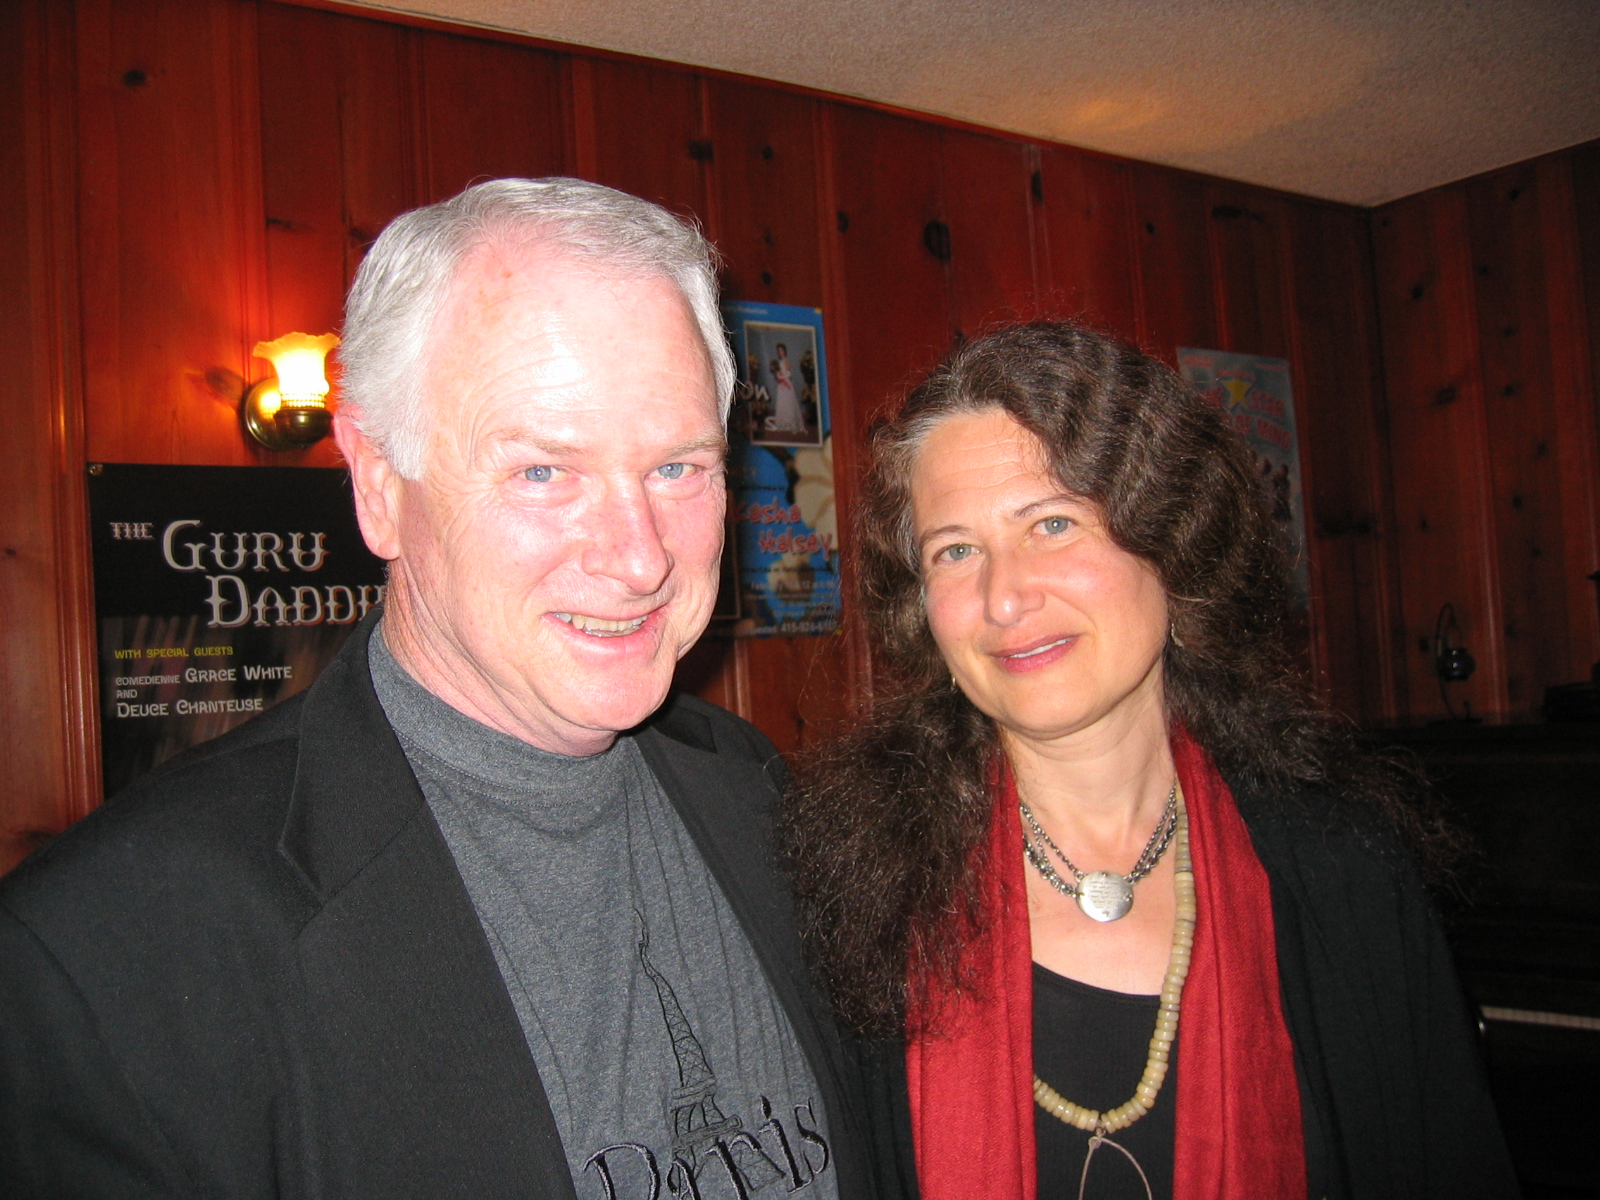 Philip with Jane Hirschfield